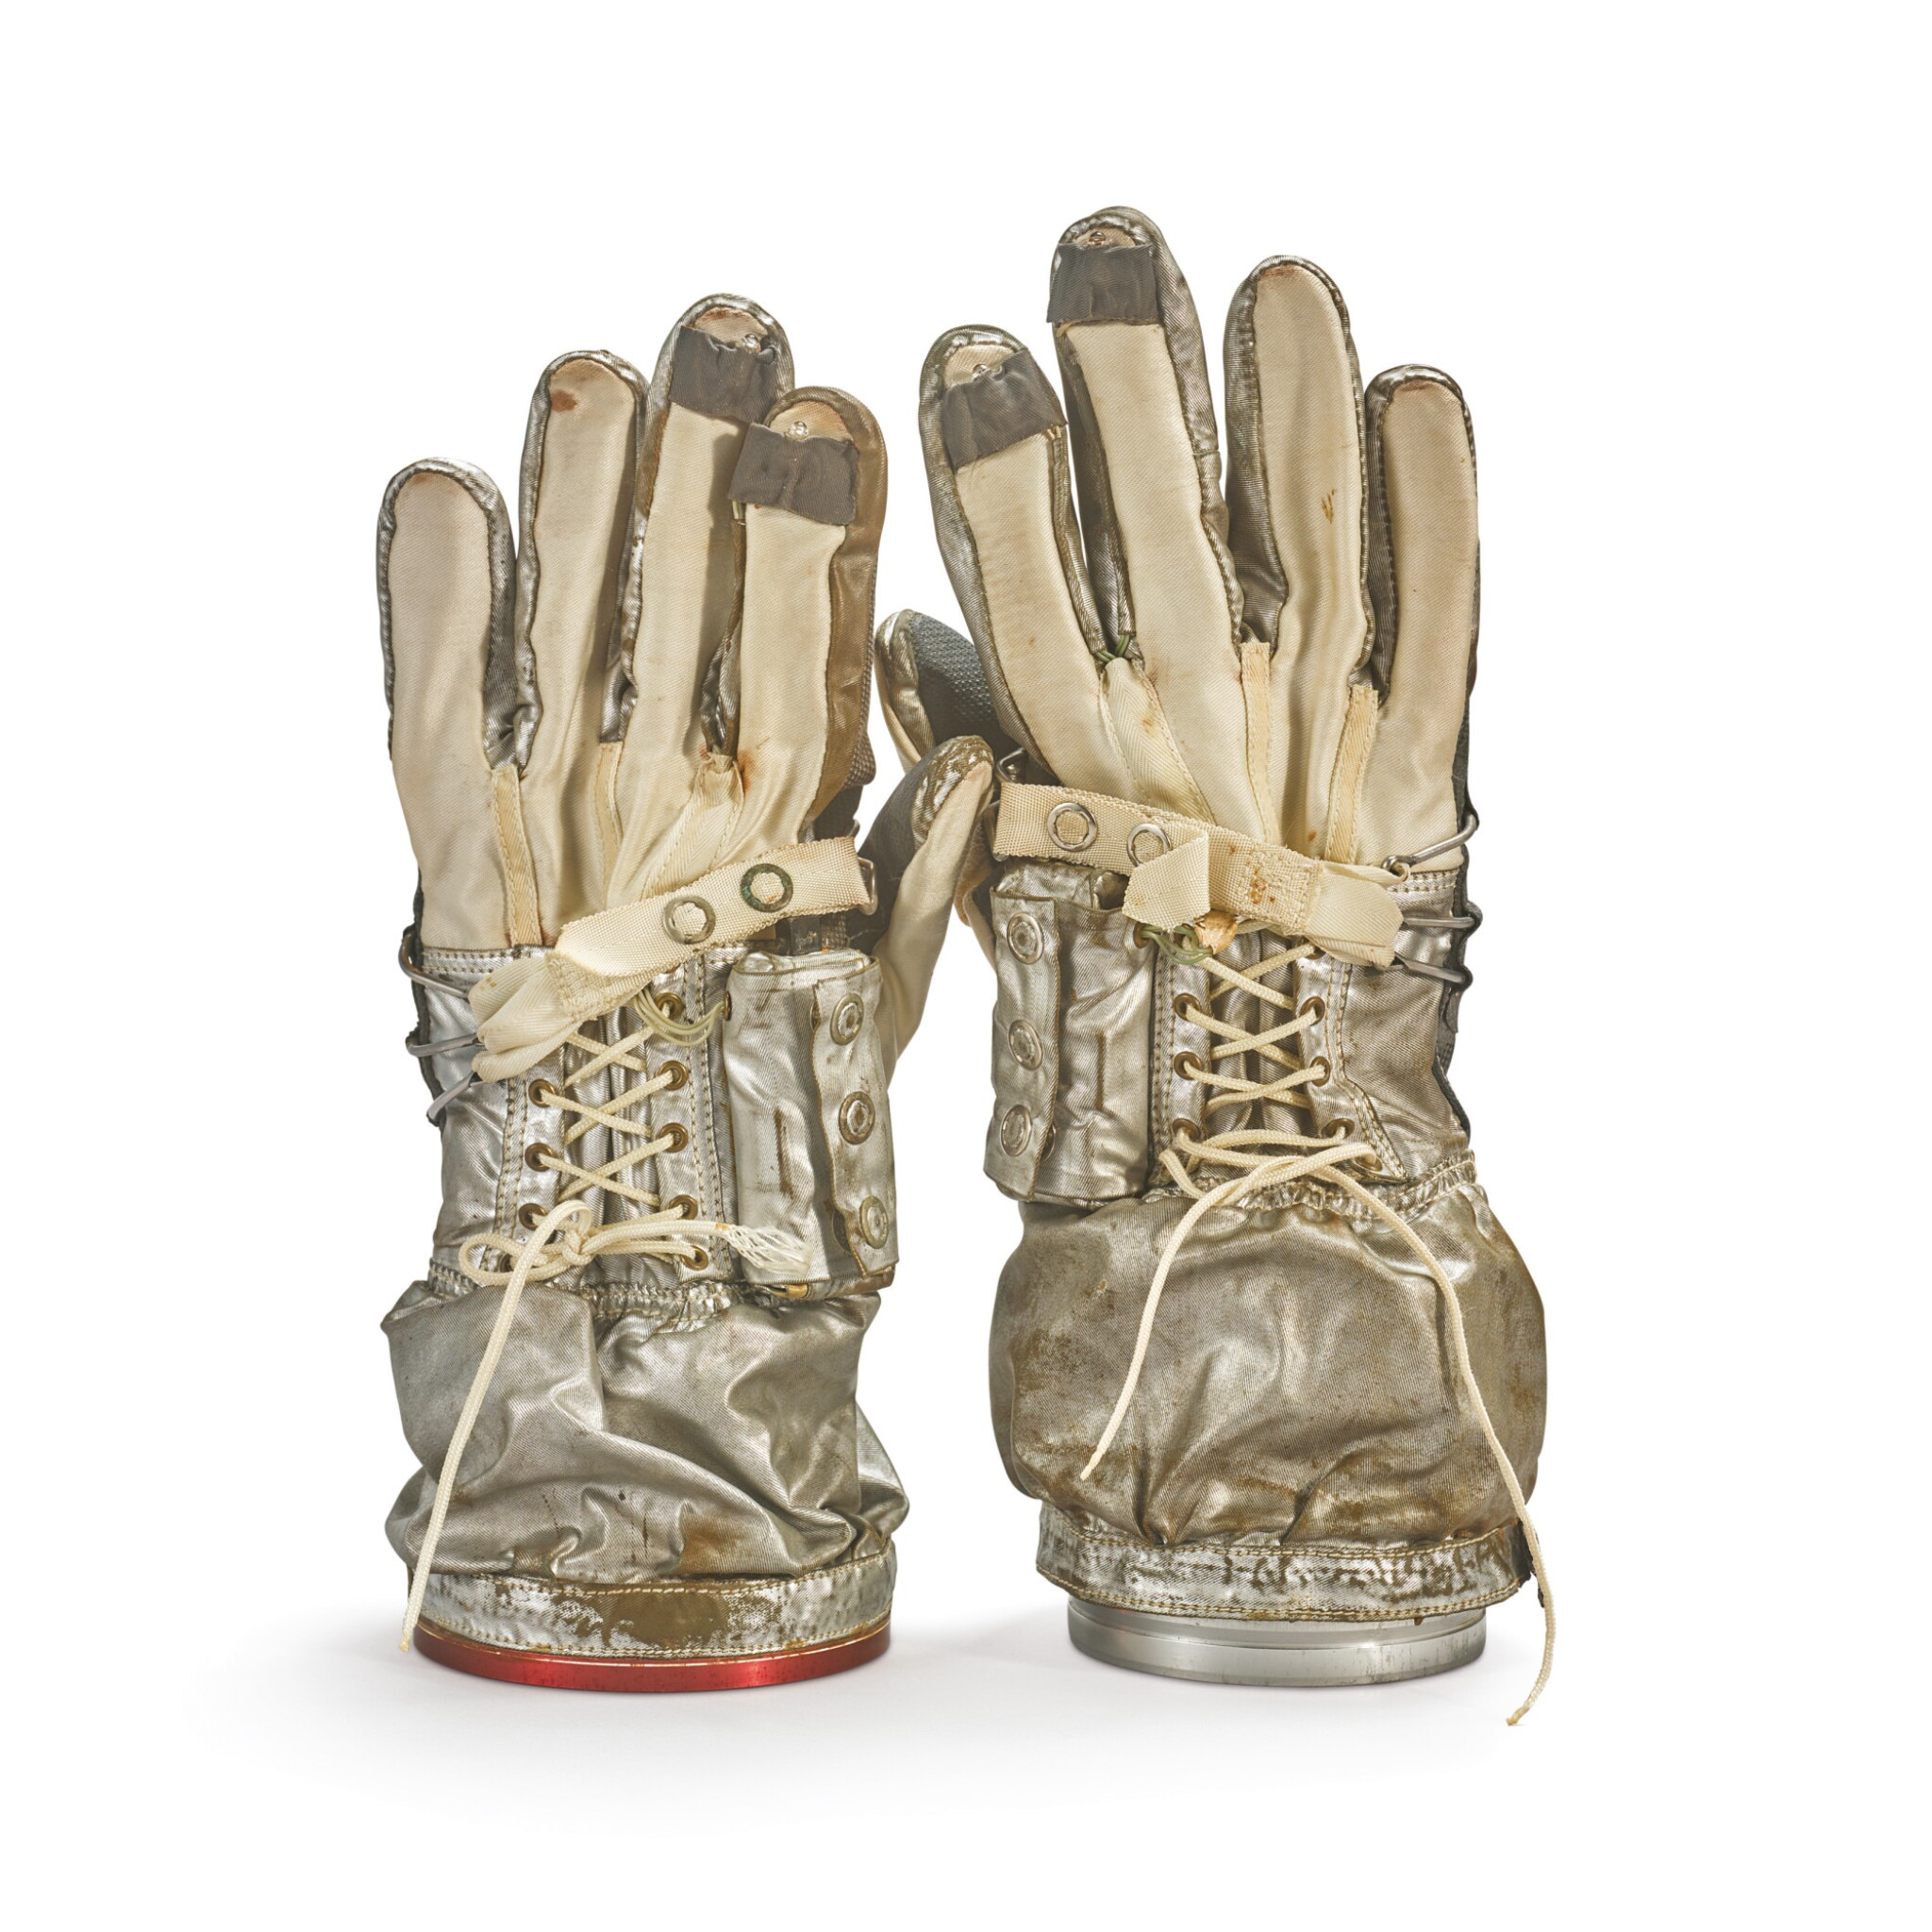 View full screen - View 1 of Lot 9. GEMINI G2-G PROTOTYPE SPACESUIT GLOVES WITH WORKING FINGER-TIP LIGHTS, MADE FOR ALAN SHEPARD, CA 1963.